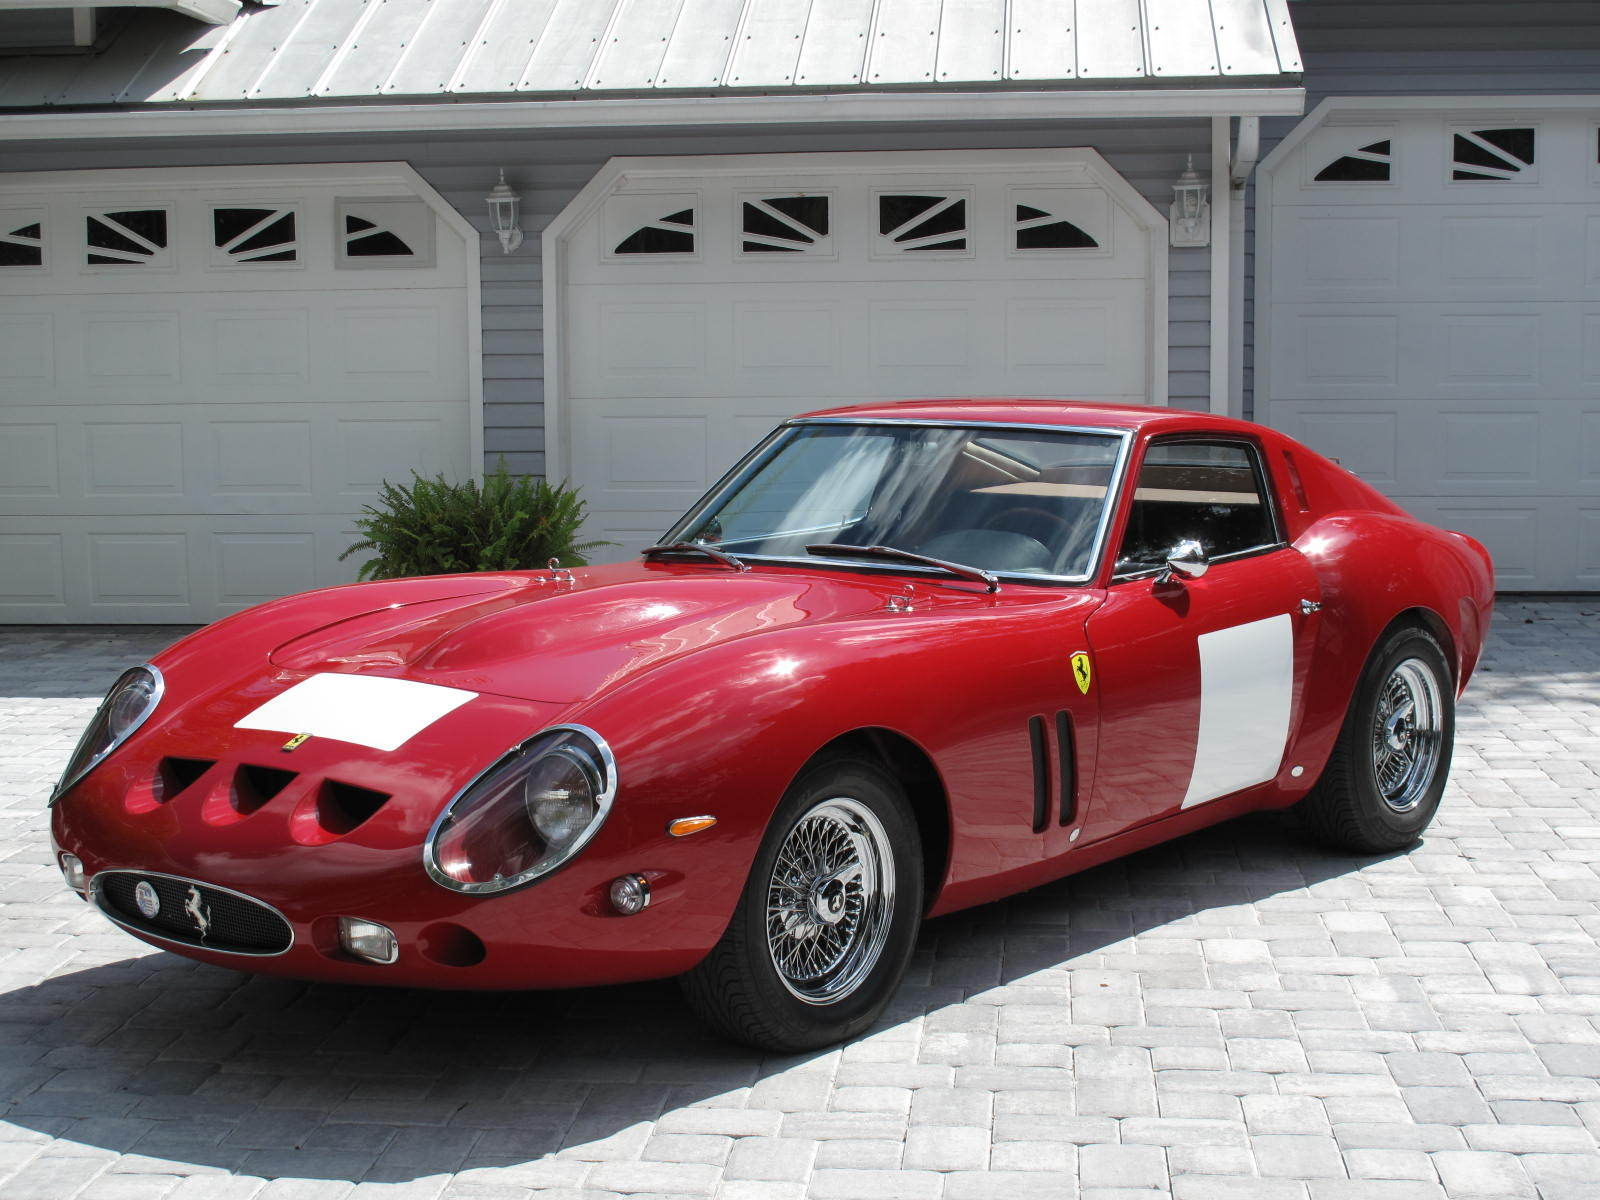 Img further Dehp Bt furthermore Ferrari Gto Berli ta Outstanding Recreation together with August also Engine. on am fm cd car stereo